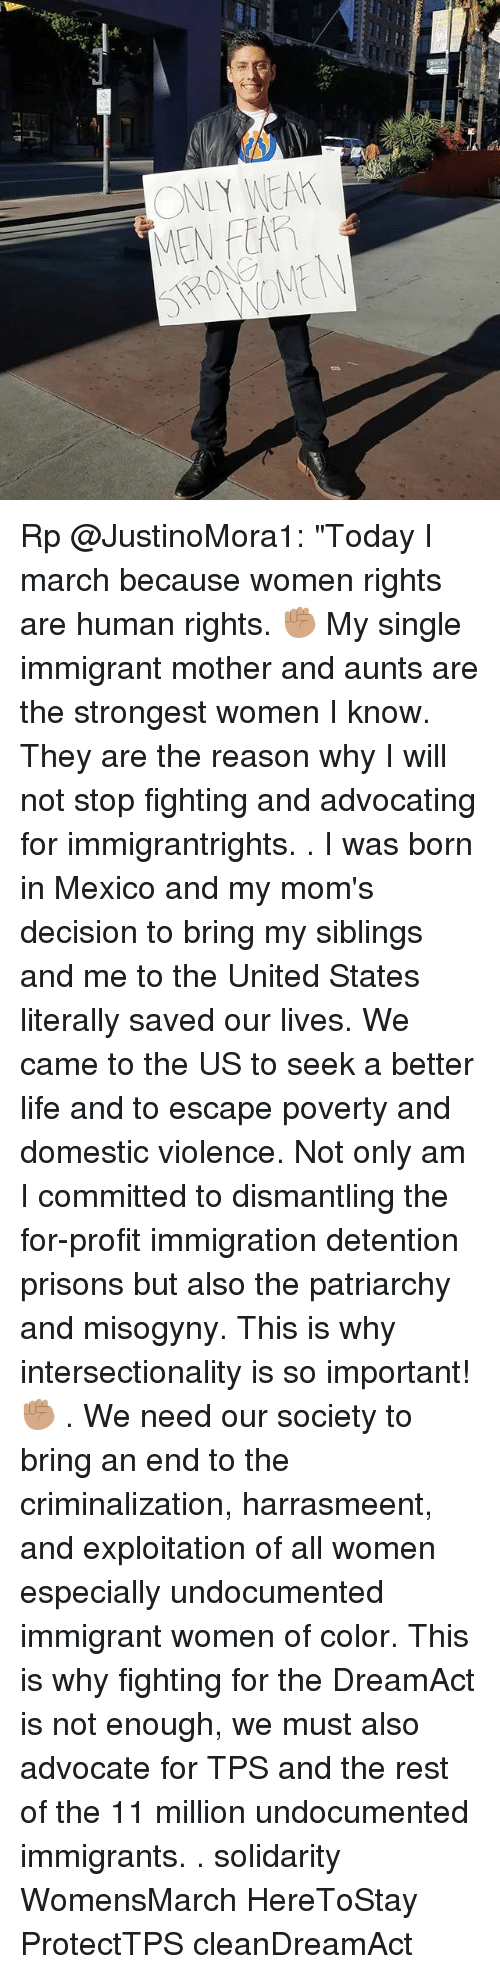 "tps: ONIY WEA  MEN FEAR Rp @JustinoMora1: ""Today I march because women rights are human rights. ✊🏽 My single immigrant mother and aunts are the strongest women I know. They are the reason why I will not stop fighting and advocating for immigrantrights. . I was born in Mexico and my mom's decision to bring my siblings and me to the United States literally saved our lives. We came to the US to seek a better life and to escape poverty and domestic violence. Not only am I committed to dismantling the for-profit immigration detention prisons but also the patriarchy and misogyny. This is why intersectionality is so important! ✊🏽 . We need our society to bring an end to the criminalization, harrasmeent, and exploitation of all women especially undocumented immigrant women of color. This is why fighting for the DreamAct is not enough, we must also advocate for TPS and the rest of the 11 million undocumented immigrants. . solidarity WomensMarch HereToStay ProtectTPS cleanDreamAct"